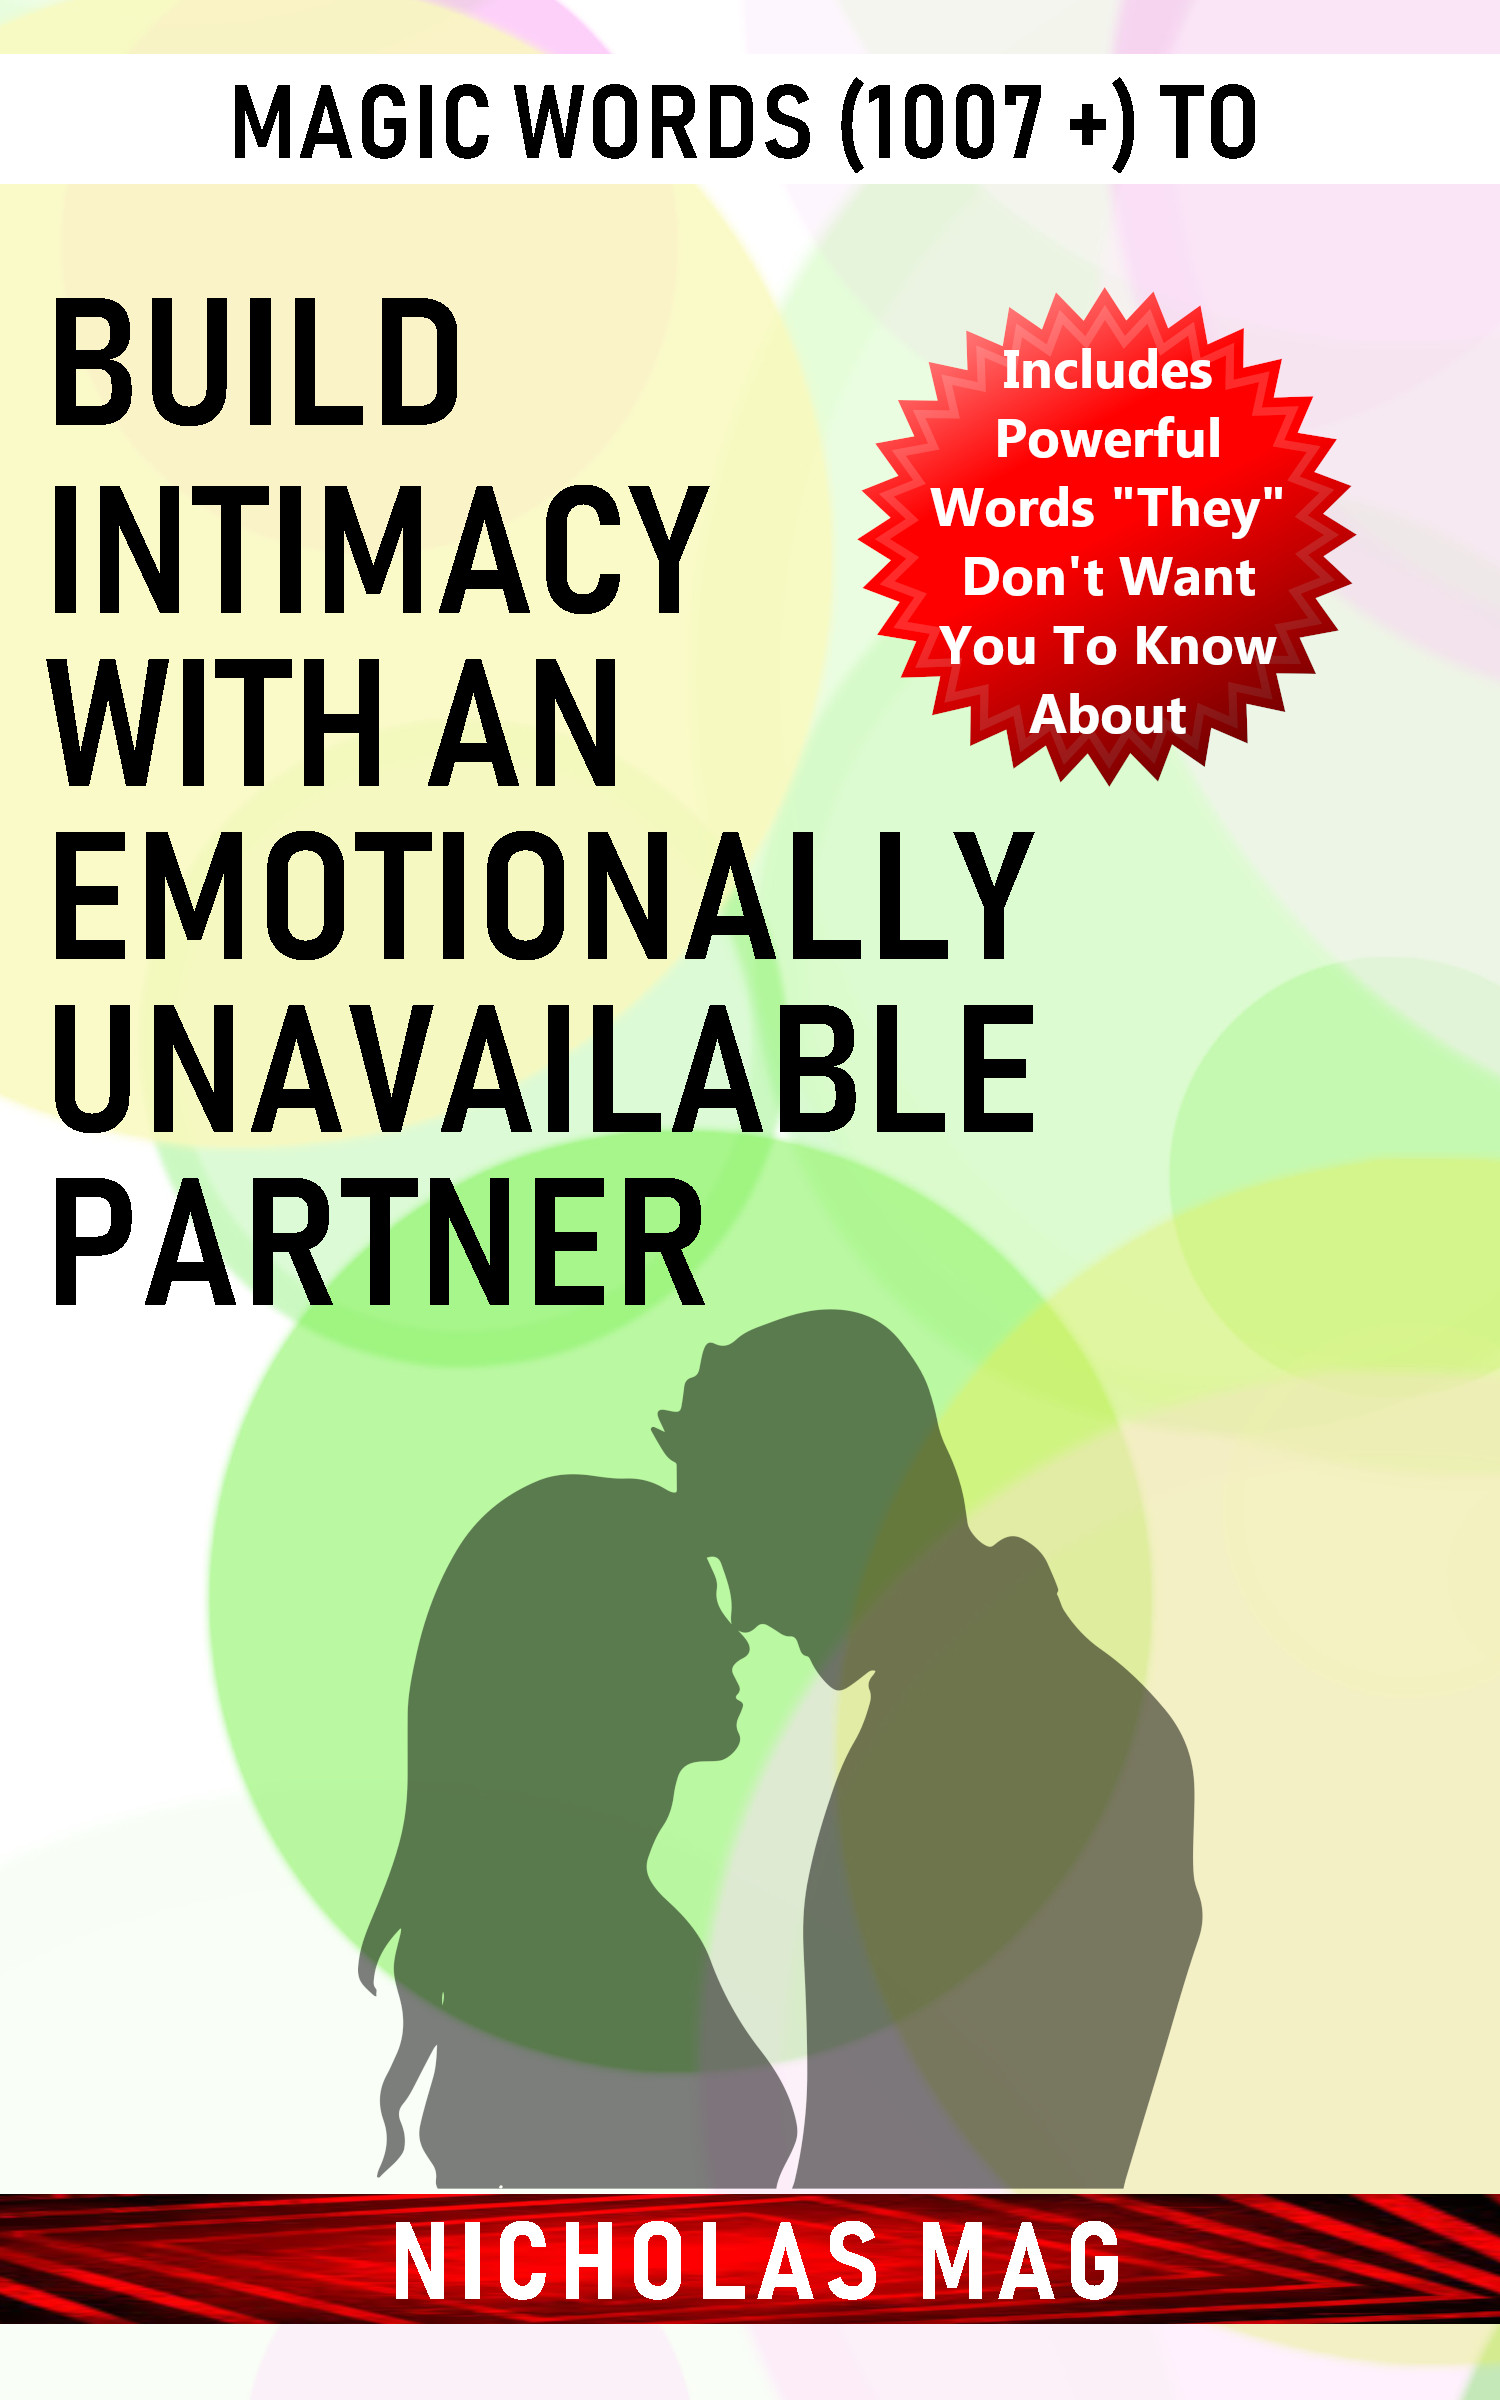 Magic Words (1007 +) to Build Intimacy with an Emotionally Unavailable  Partner, an Ebook by Nicholas Mag